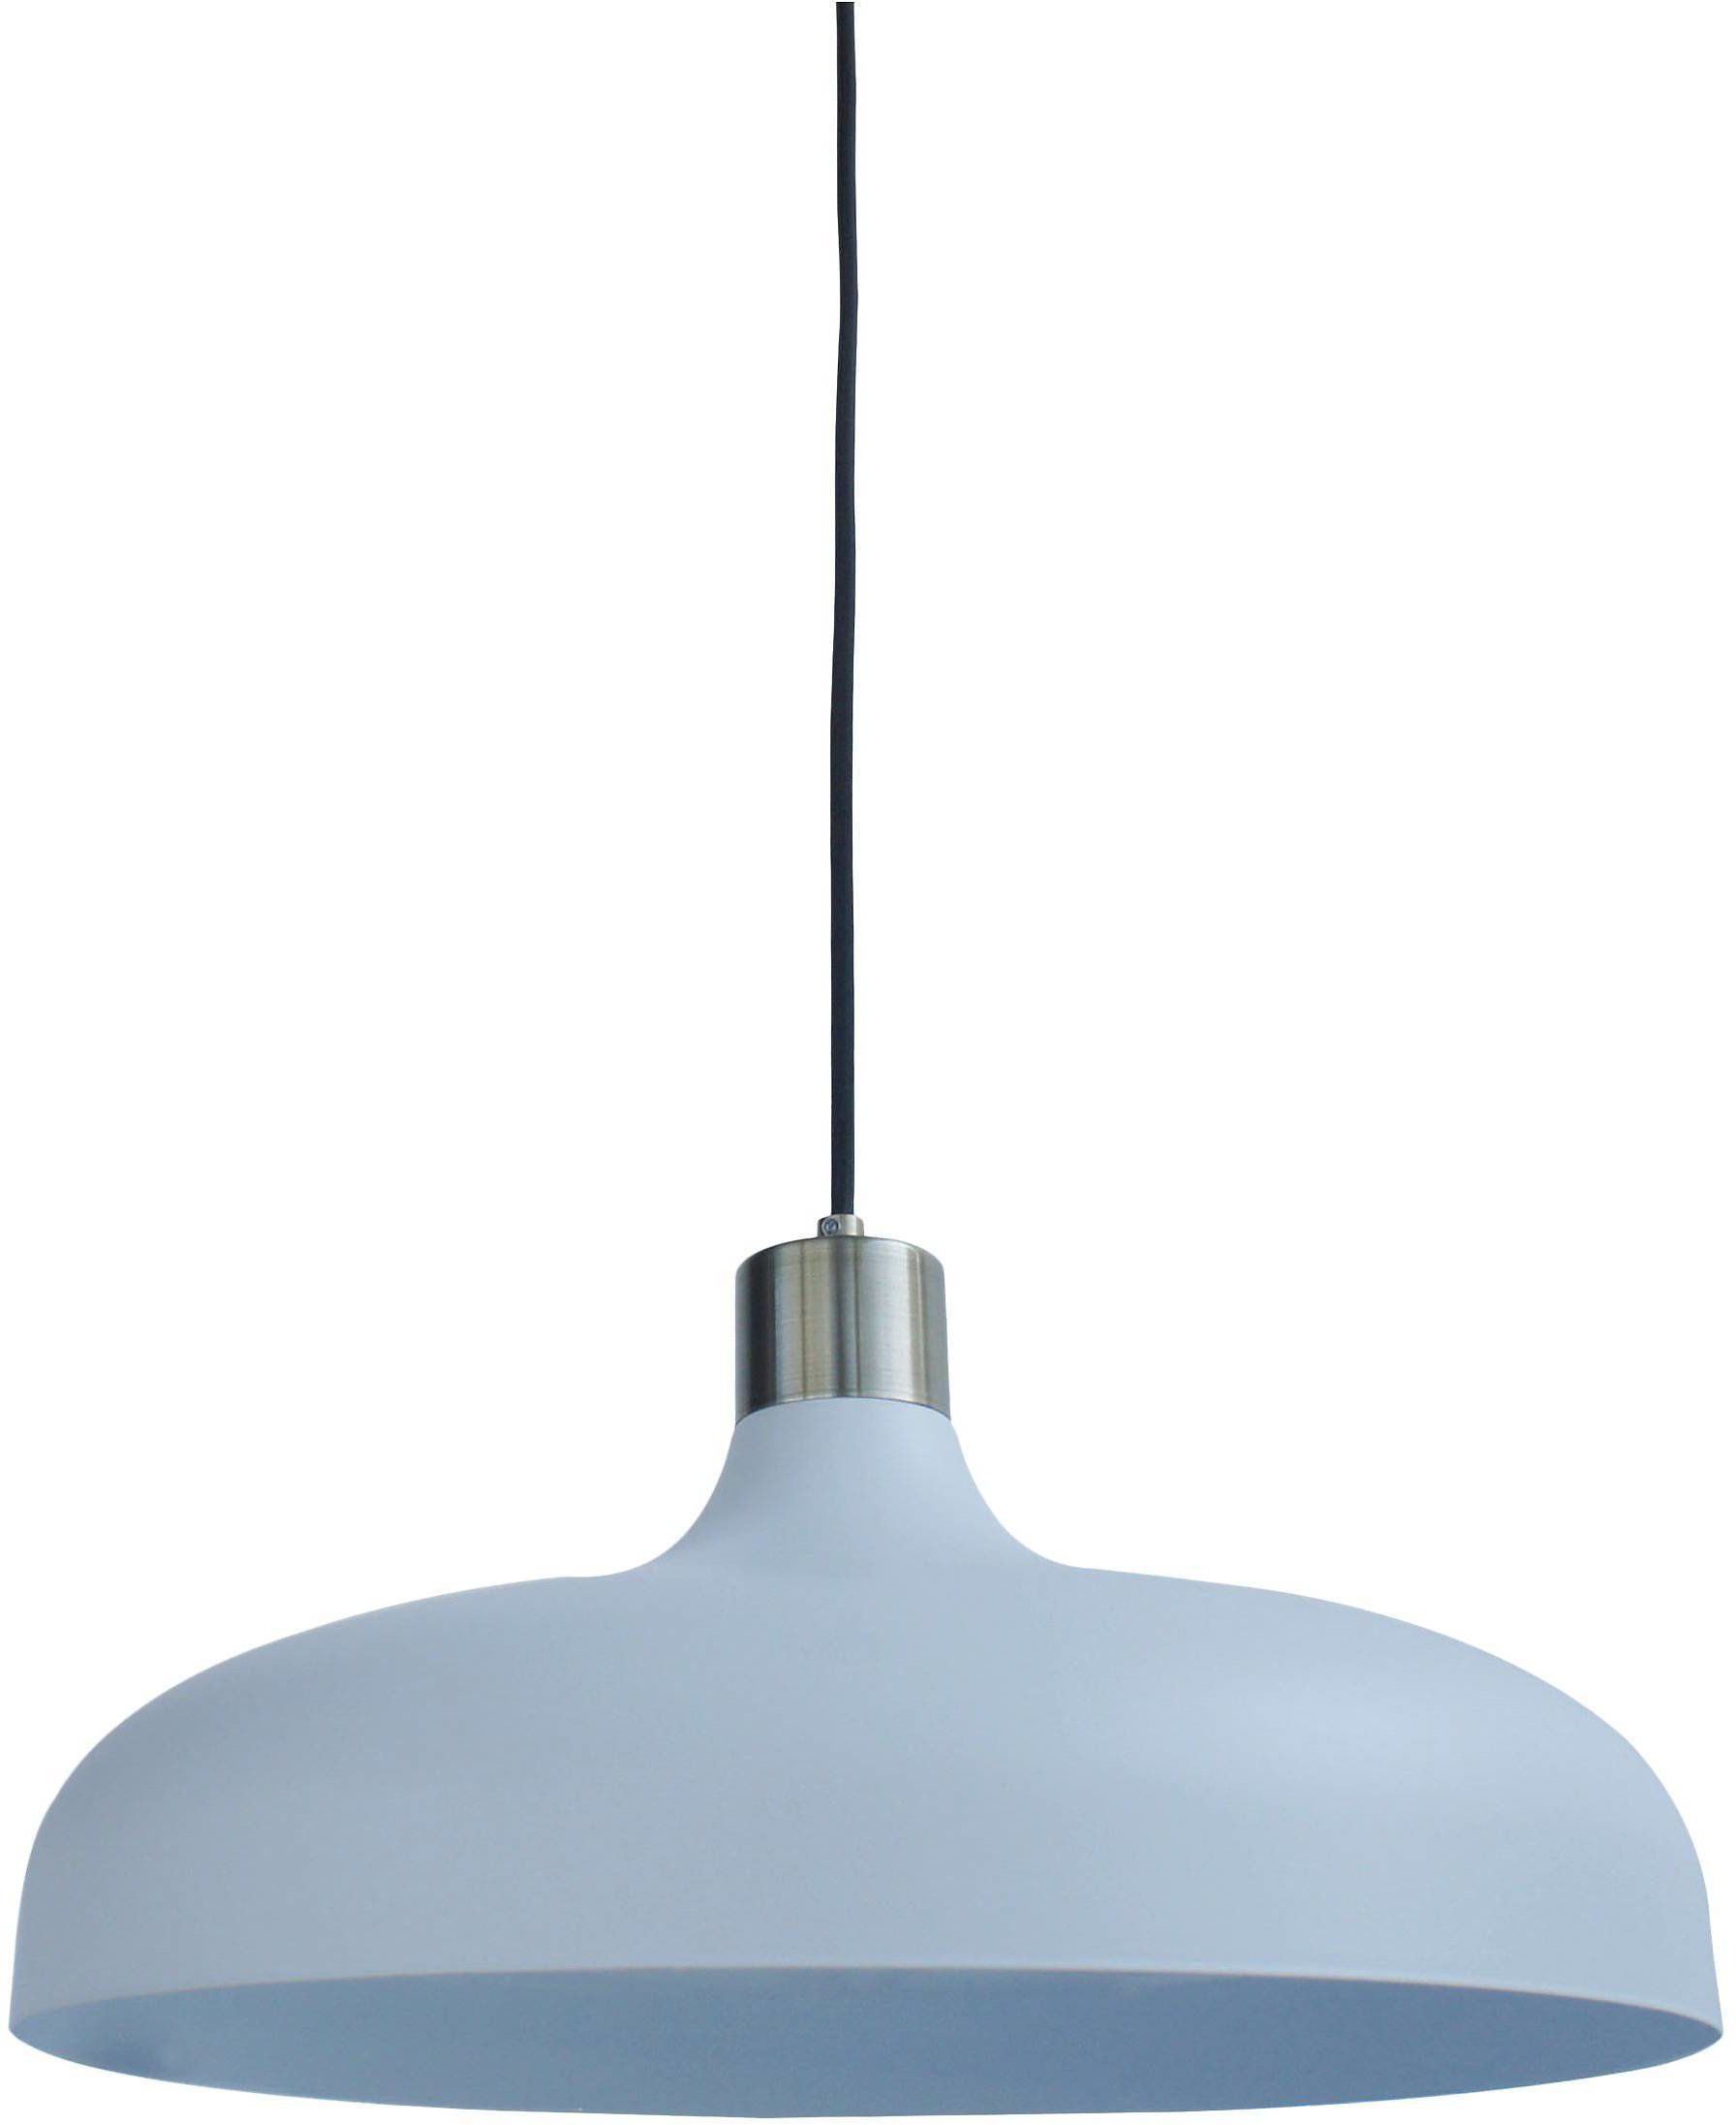 crosby collection large pendant light. #Crosby Collection Large Pendant Light (Includes CFL Bulb) - Threshold #coupons # Crosby W